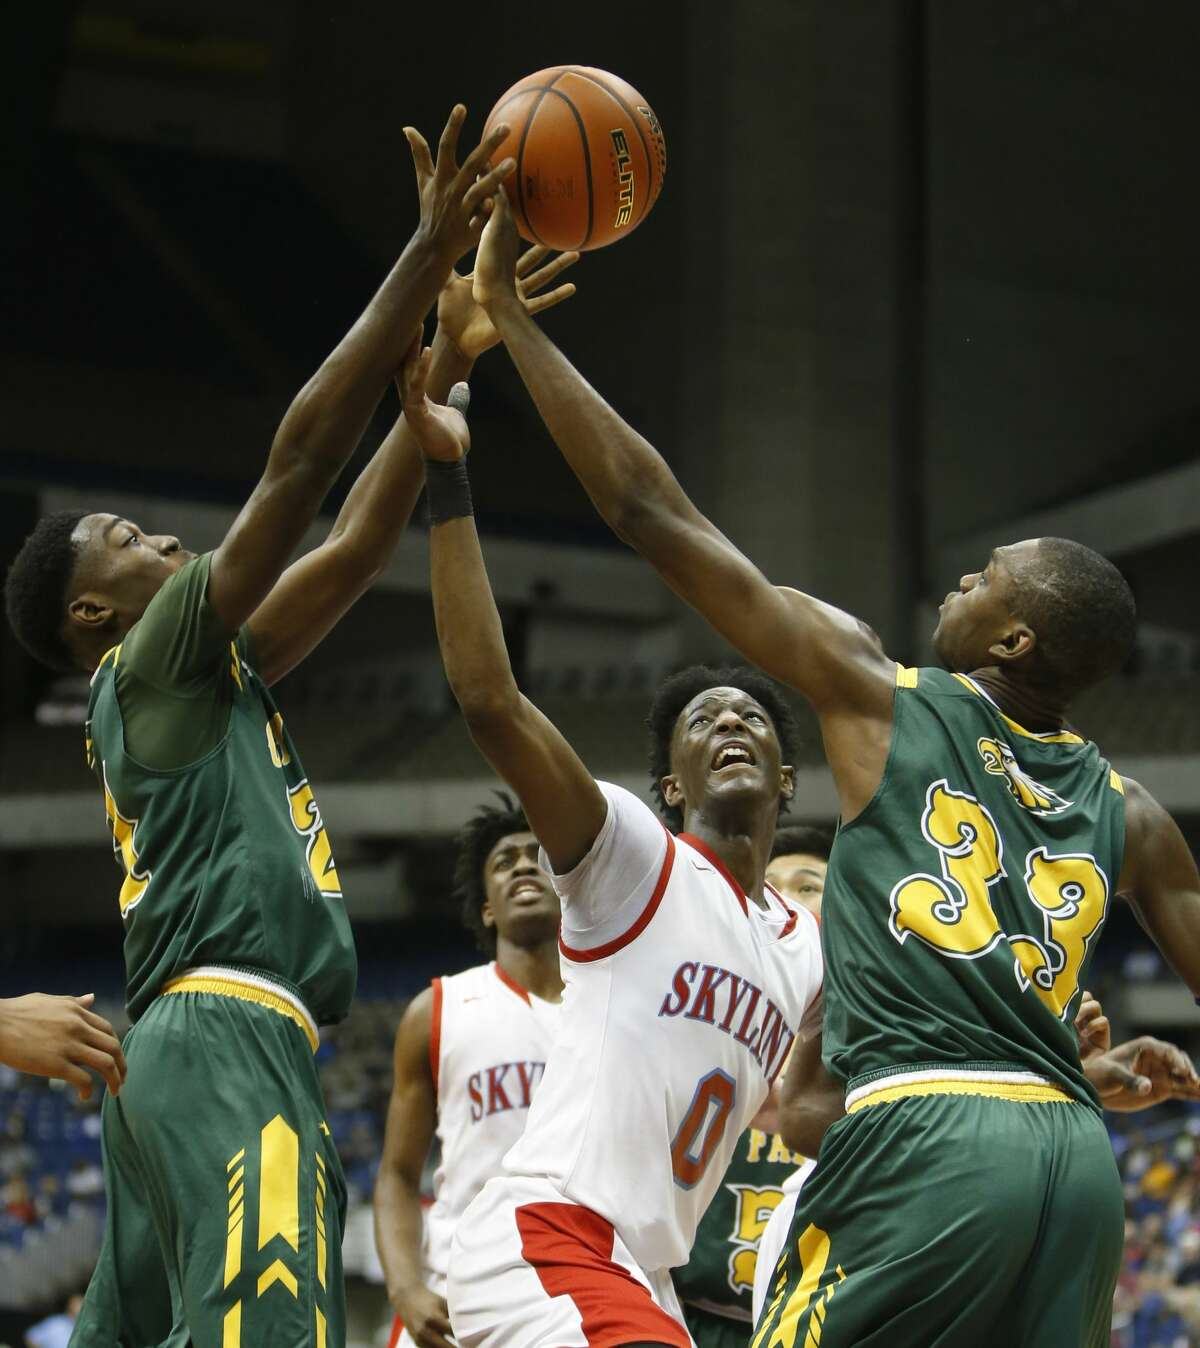 Dallas Skyline?•s Marcus Garrett (0) get score against Cypress Falls?•s Kendall Scott (21) and Cypress Falls?•s Deshang Weaver (33) from UIL Class 6A boys basketball semifinal between Skyline and Cypress Falls on Friday, March 10, 2017 at the Alamodome. (Ronald Cortes/Special Contributor)